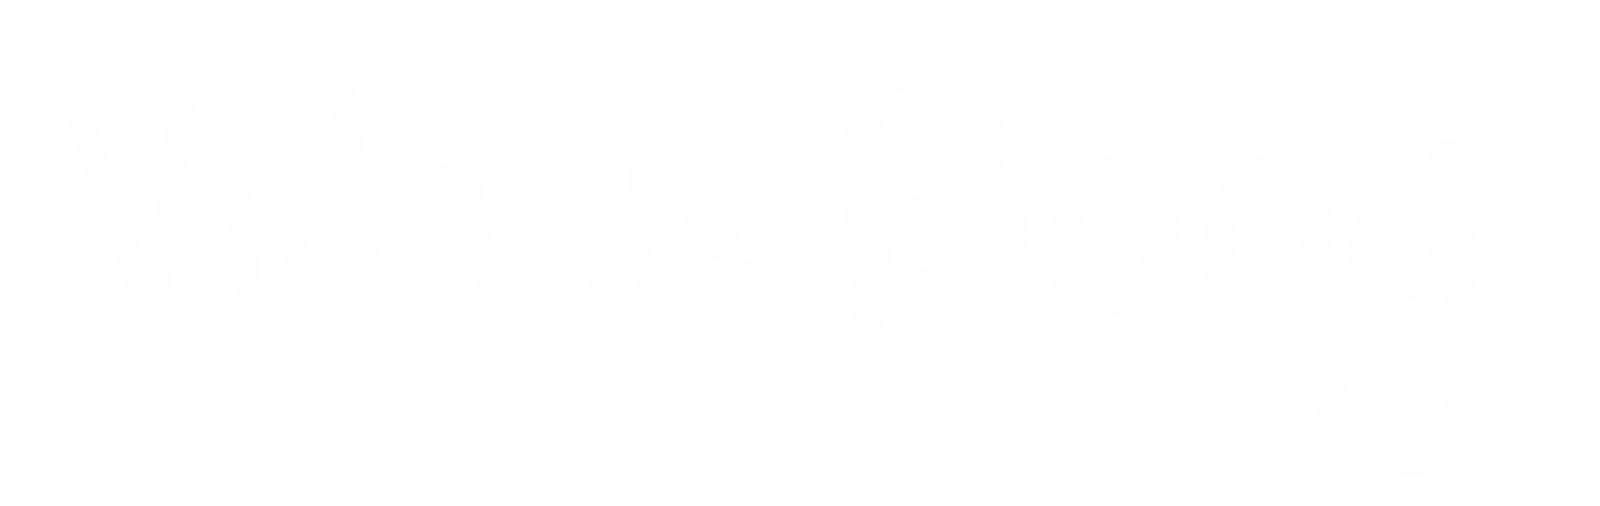 Logo do blog Vida de Boog